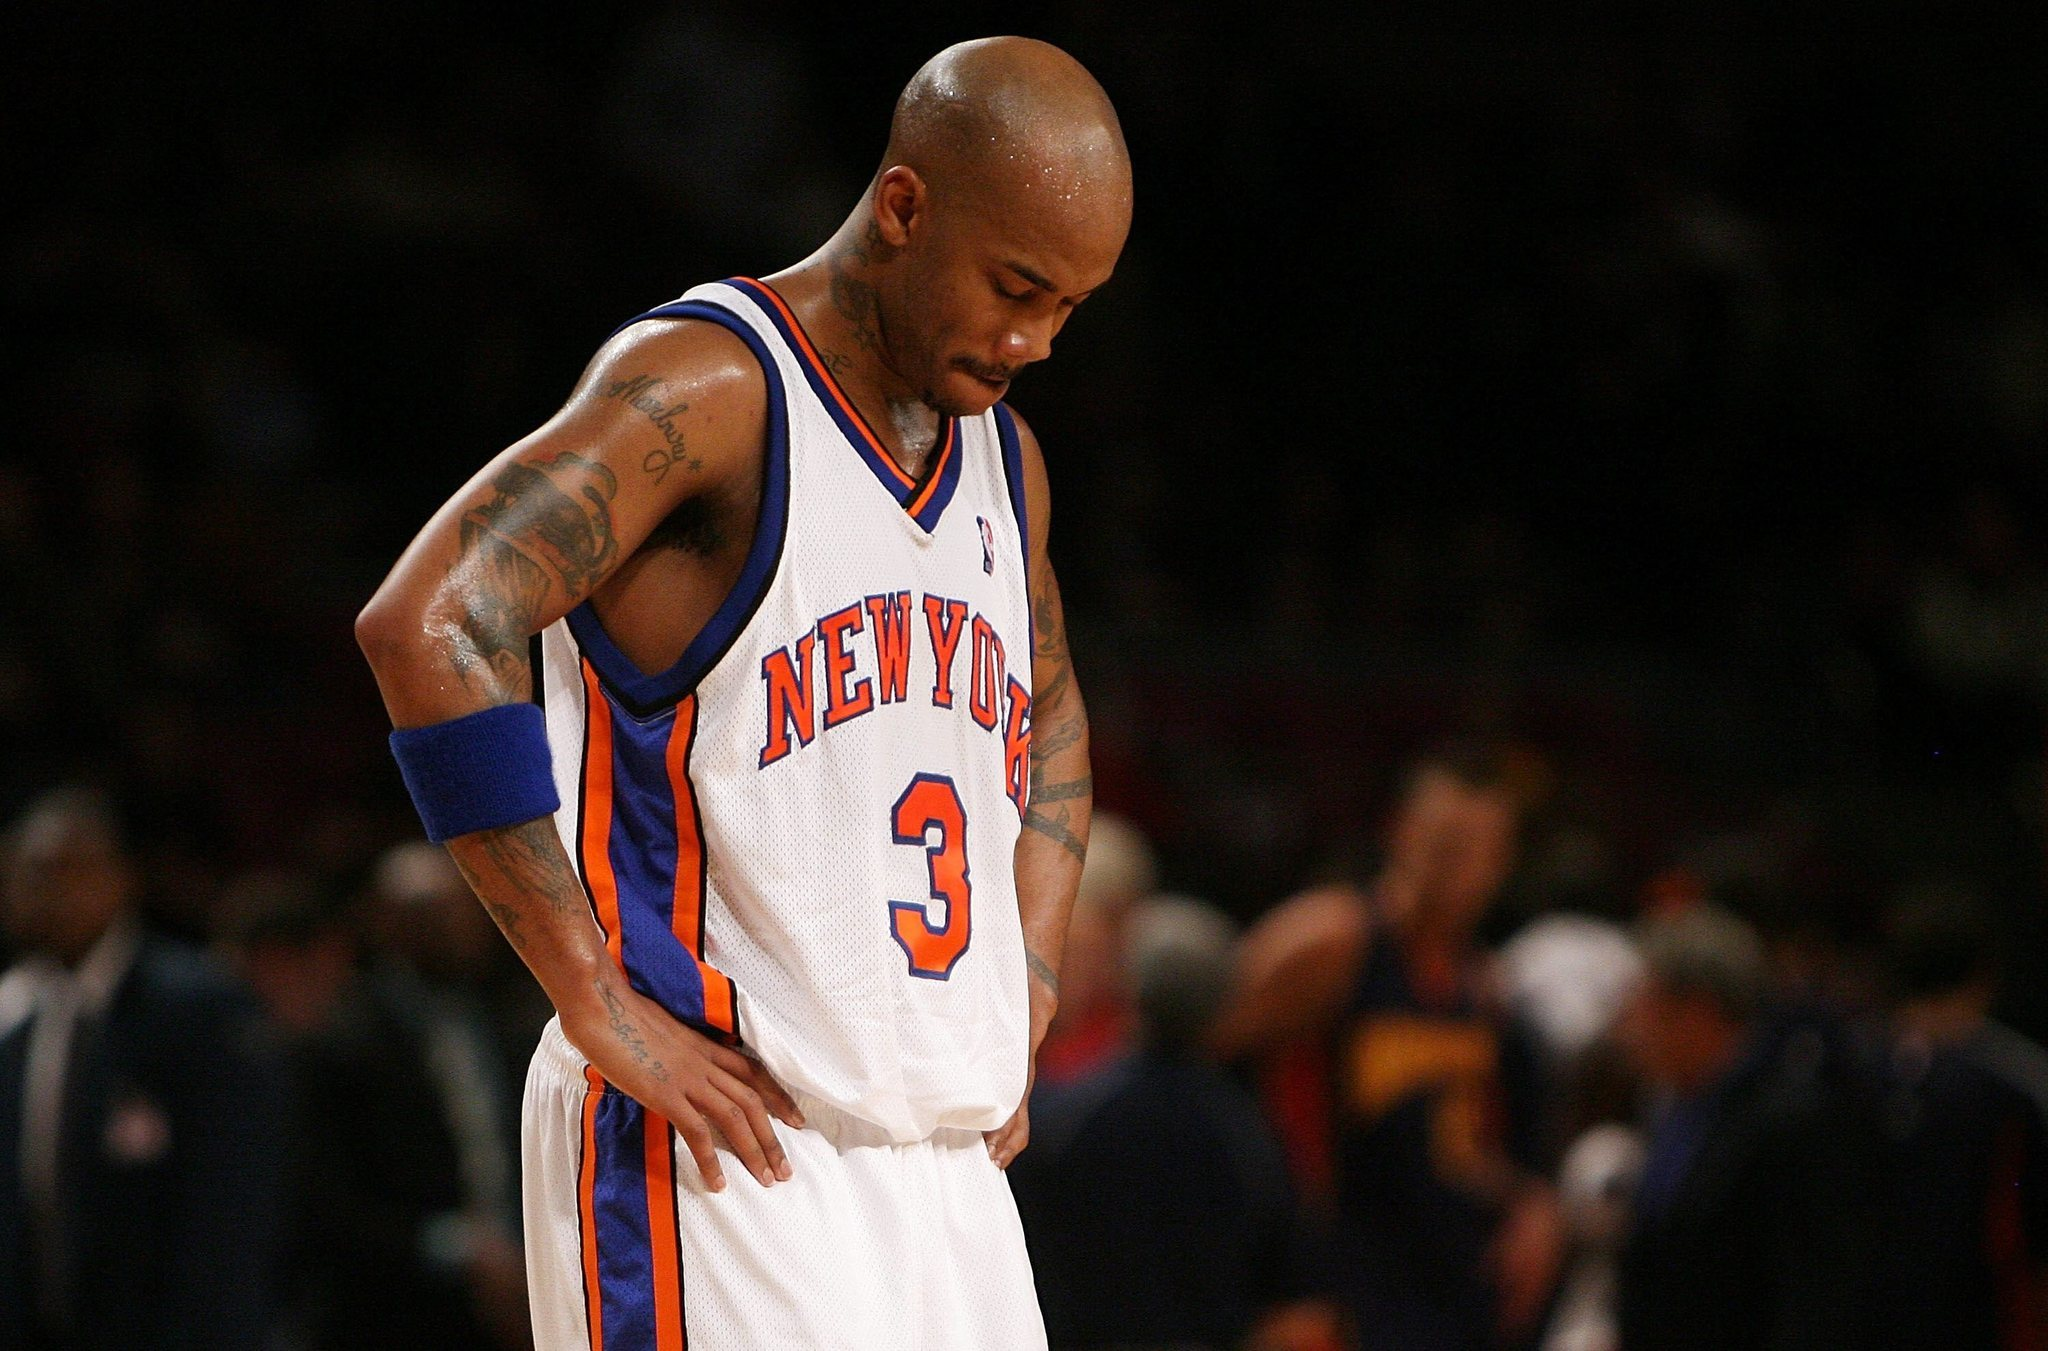 Stephon Marbury From NBA bad boy to Chinese celebrity LA Times